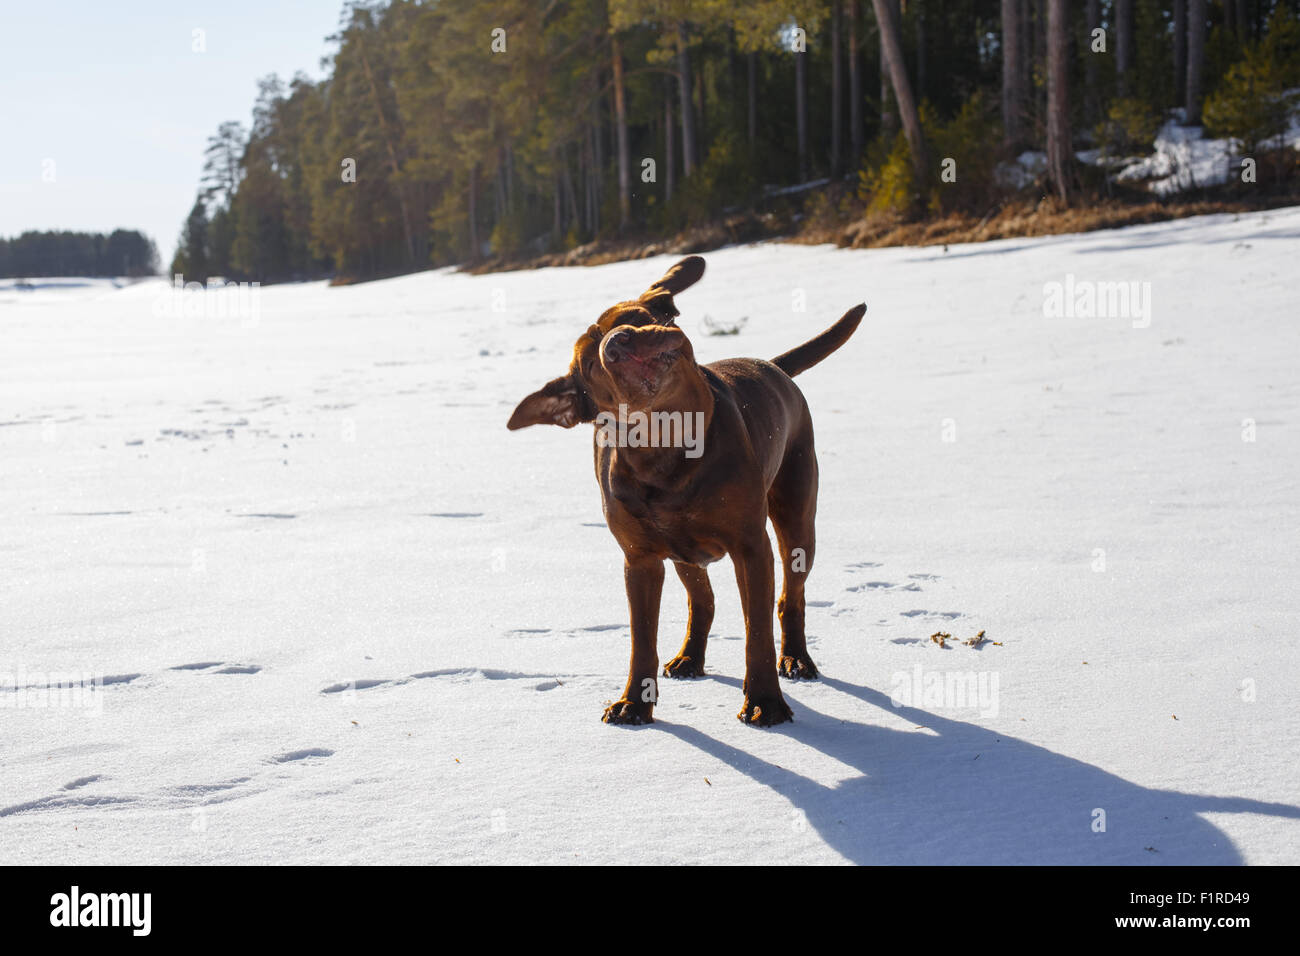 Brown pedigreed dog shaking its head in a snow covered river at a pinery on a sunny day. - Stock Image